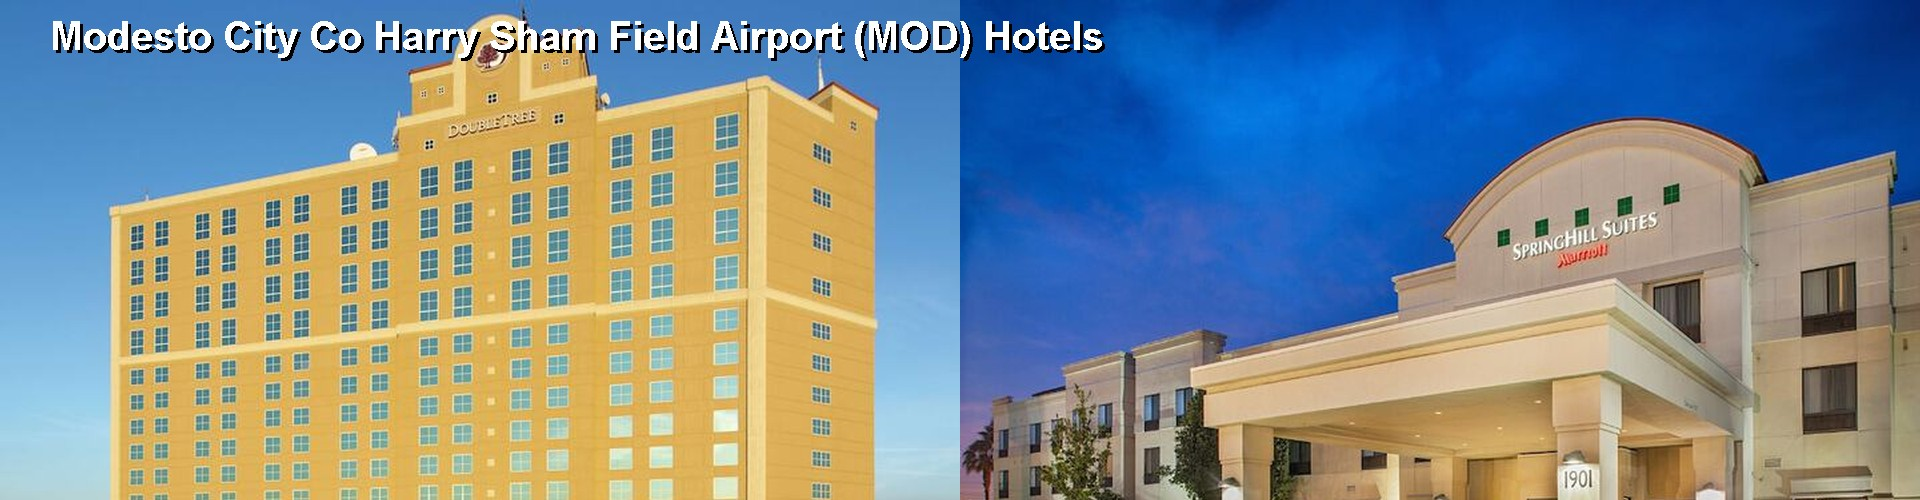 5 Best Hotels near Modesto City Co Harry Sham Field Airport (MOD)